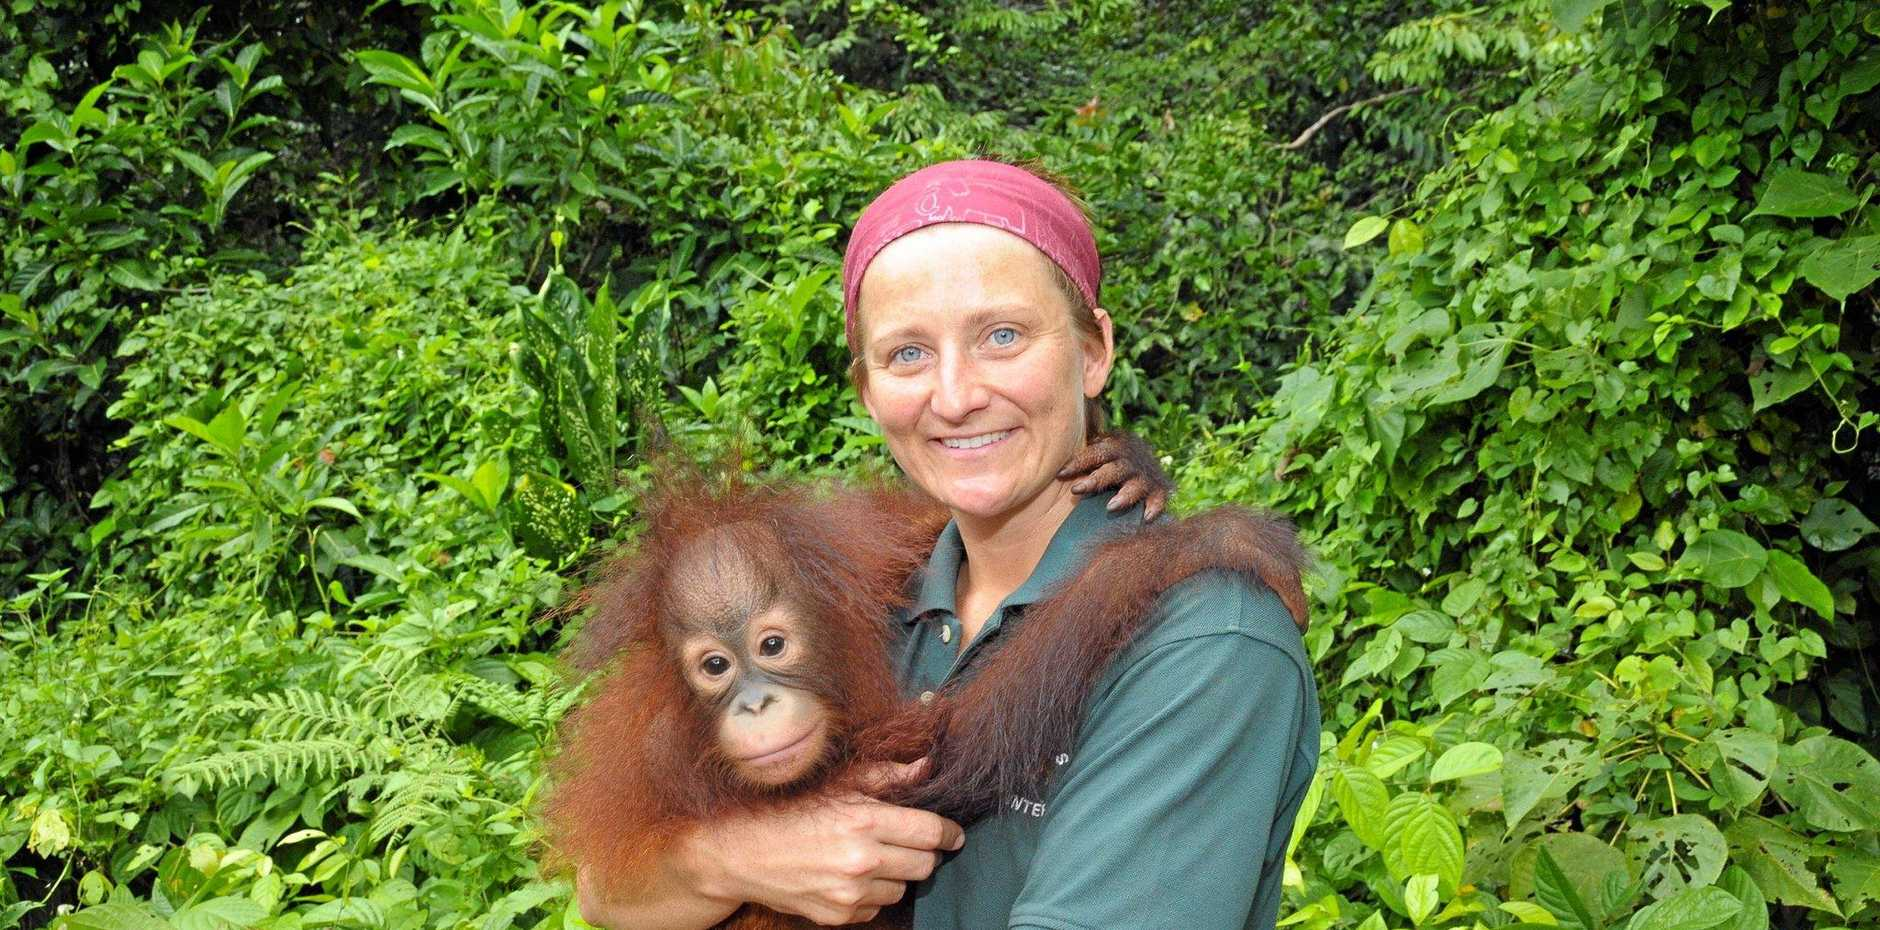 Caroline Ladewig has been on several volunteering trips to Borneo where she helped rehabilitate orangutans.